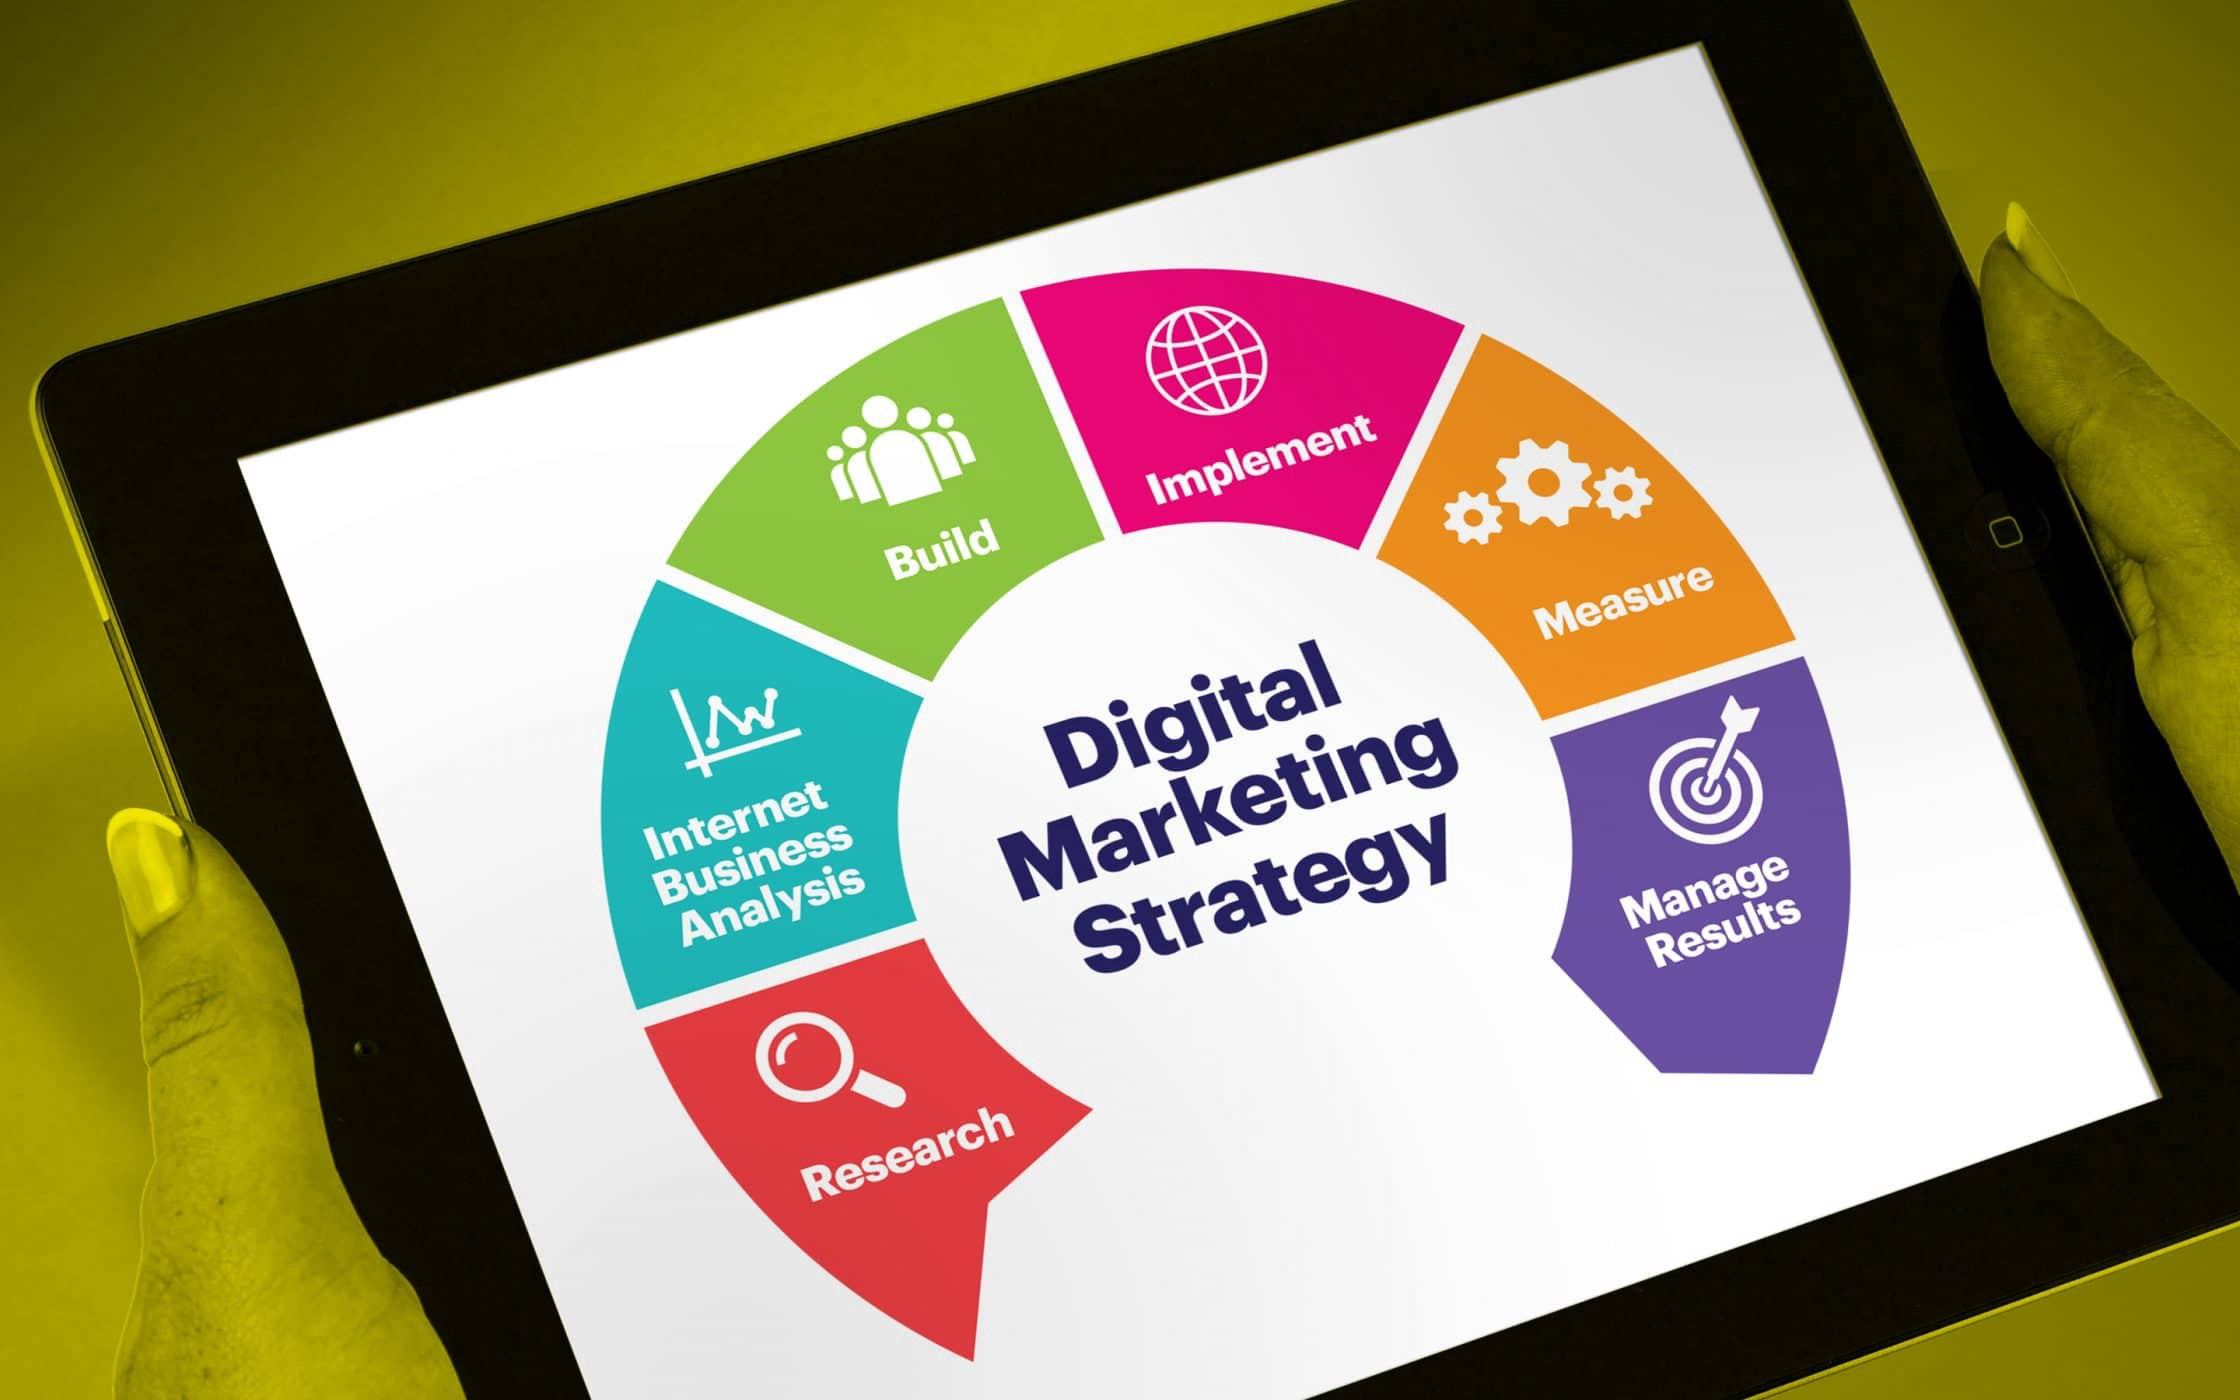 Digital marketing strategy saying research, analytics, implementation, measuring and managing results is all key parts.